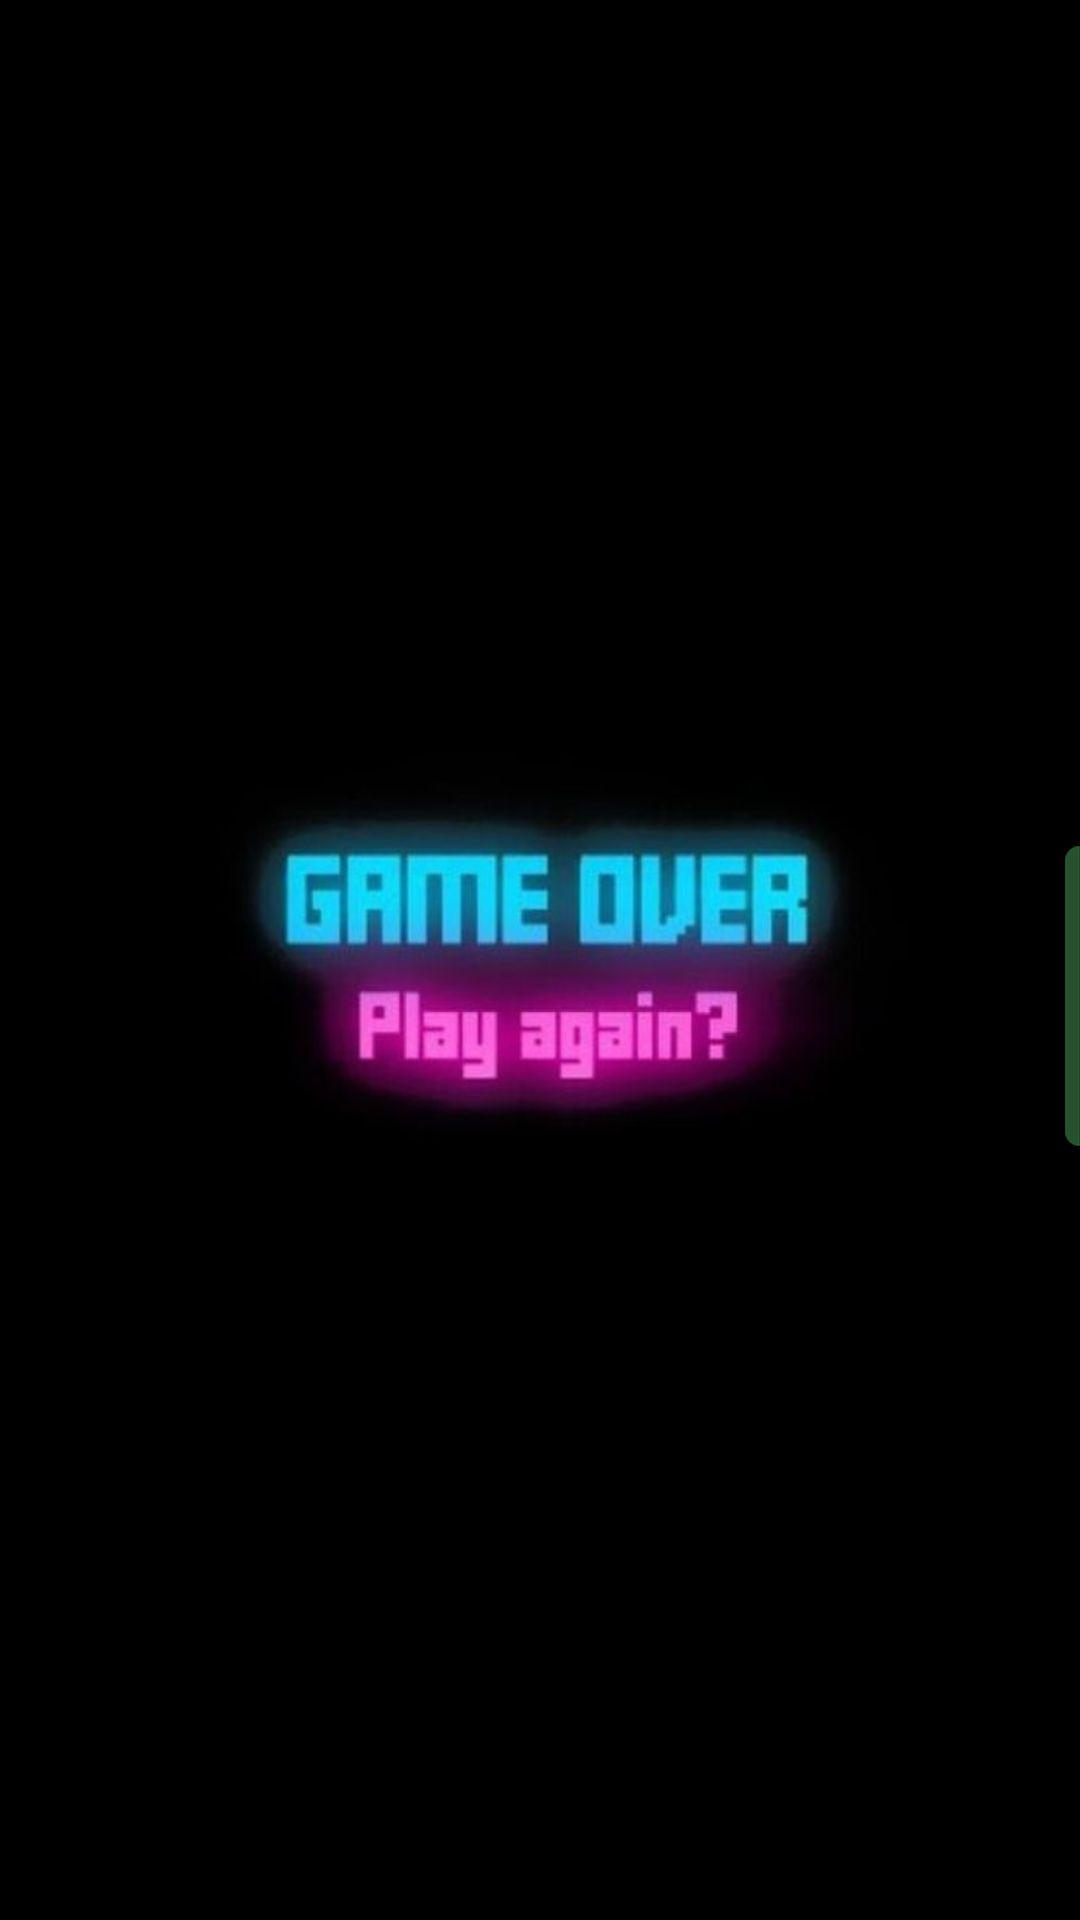 Game Over Aesthetic Wallpapers